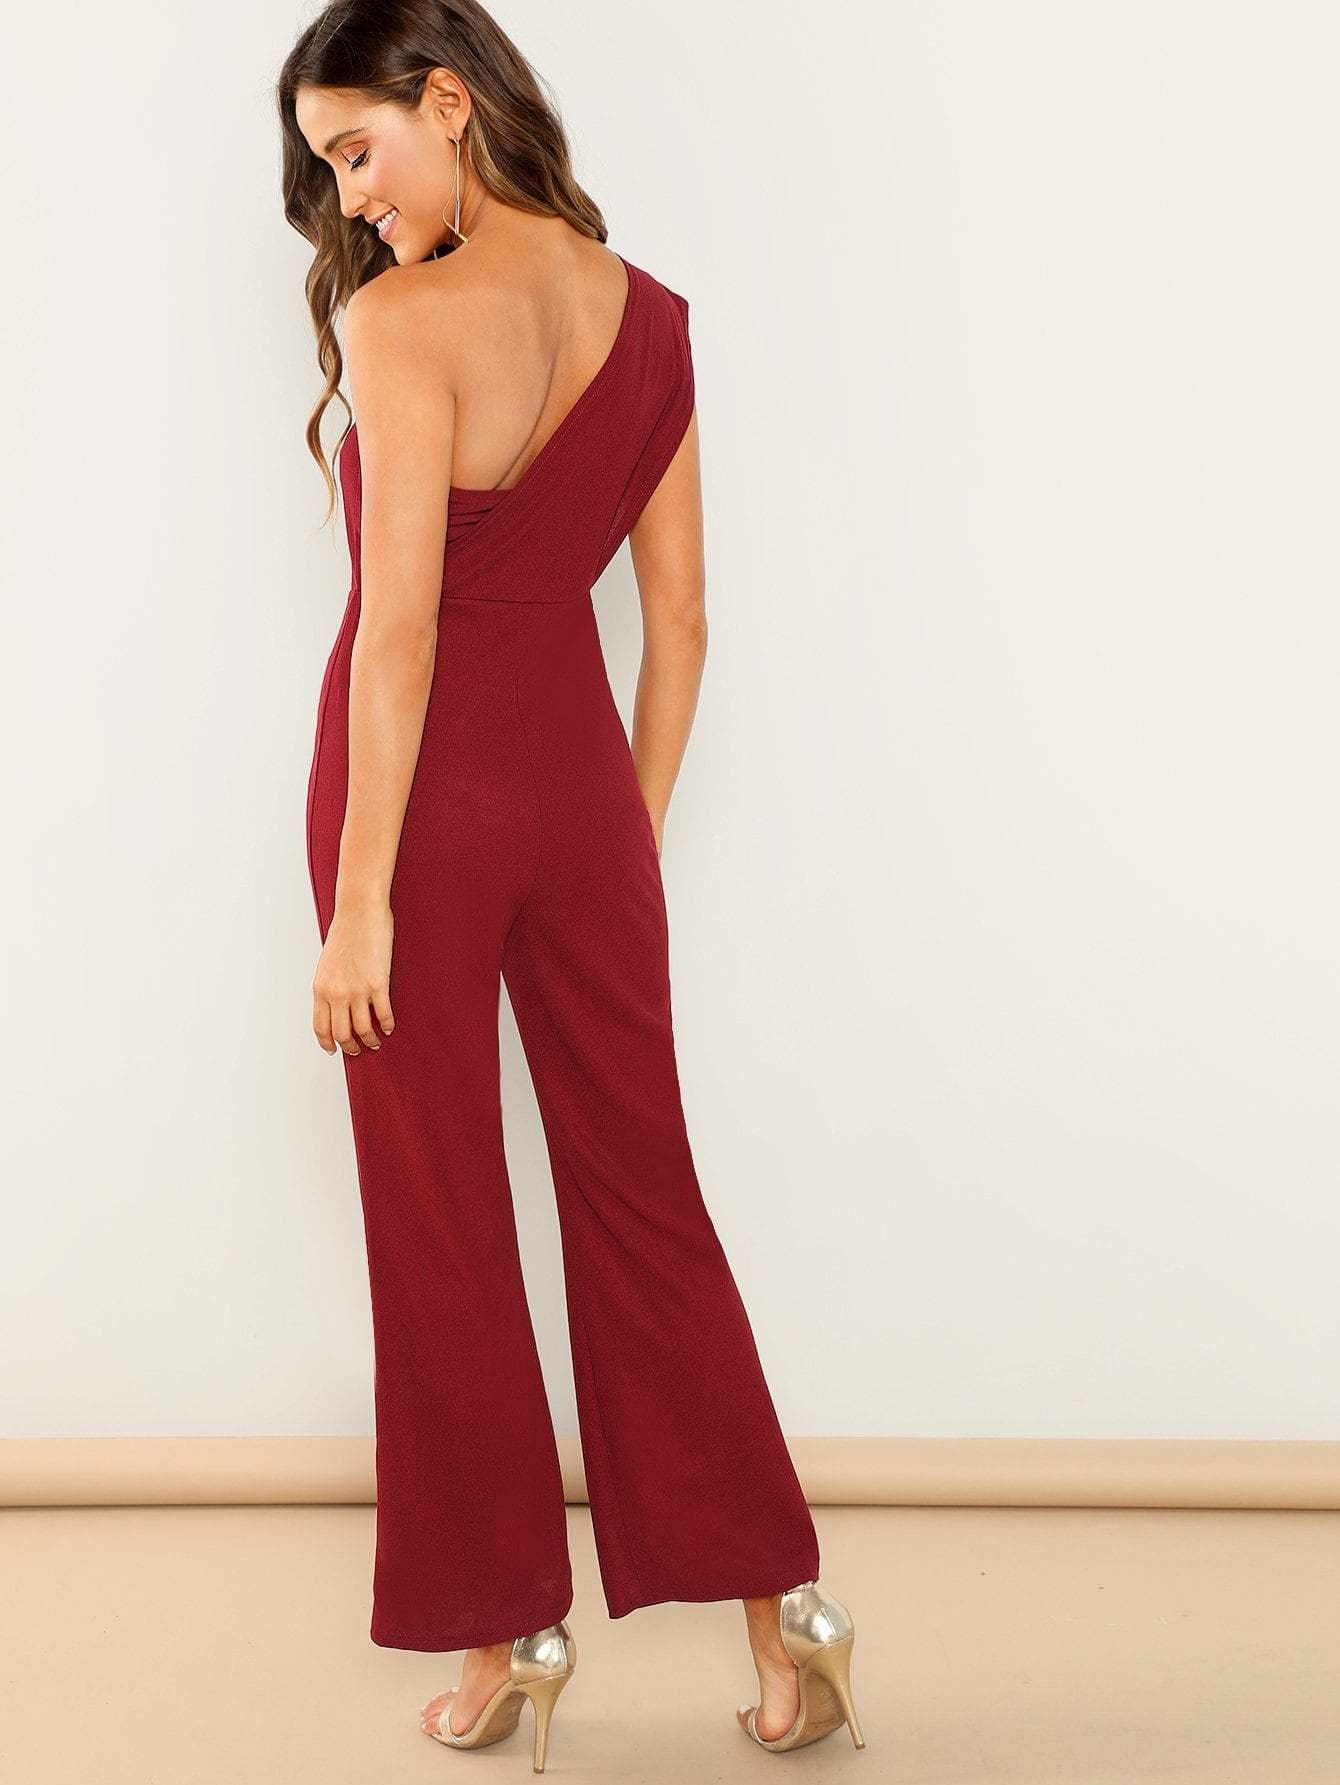 d5e78cf97068 One Shoulder Flared Jumpsuit - Womens Jumpsuits